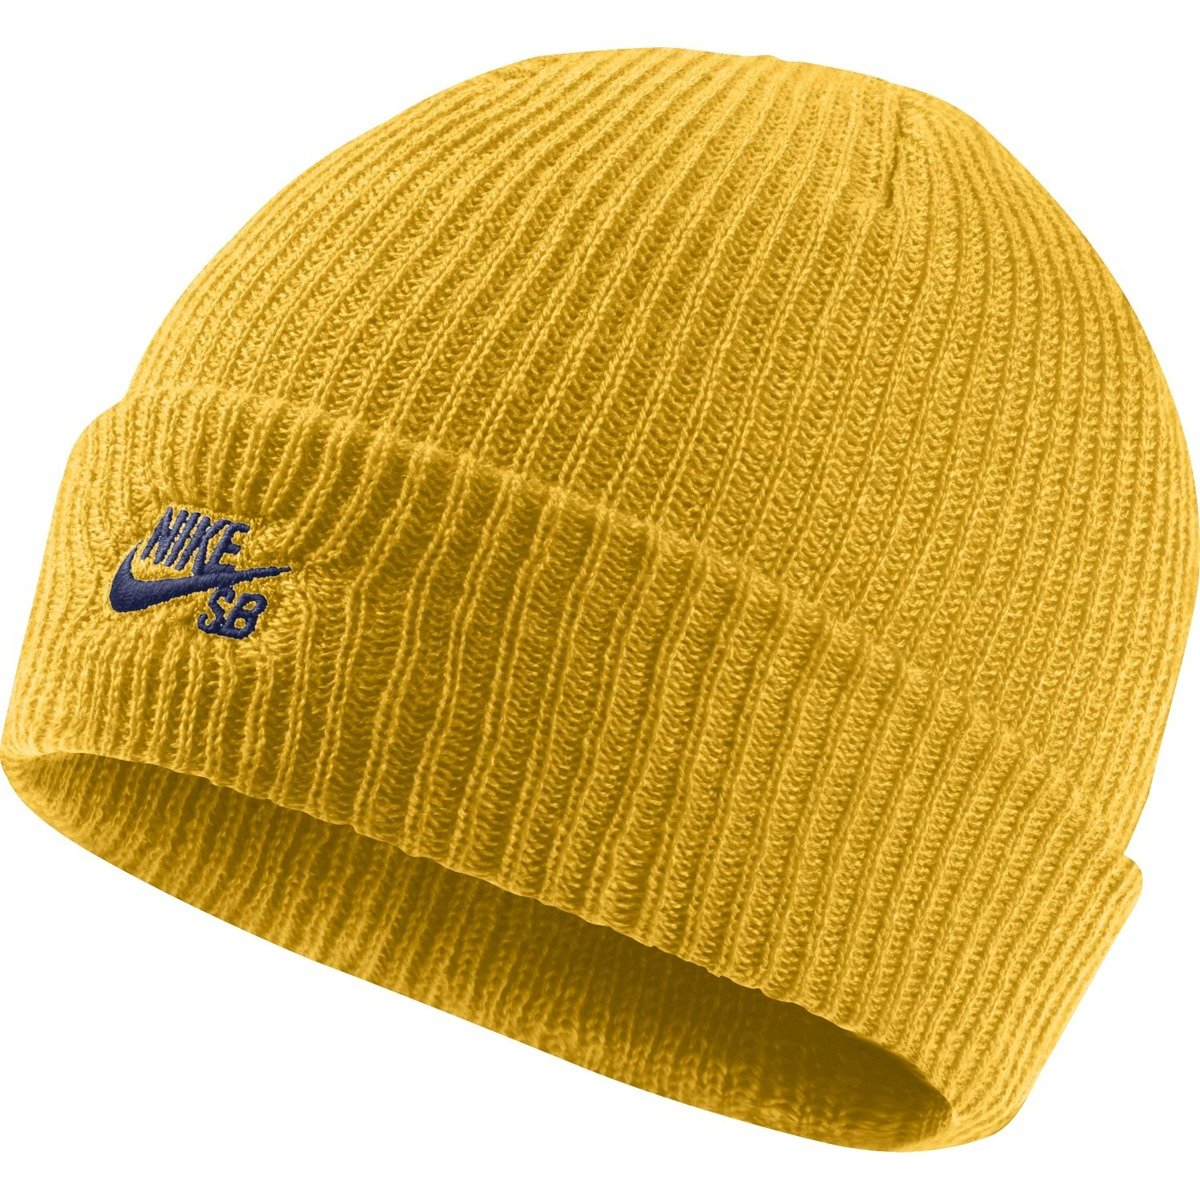 0ded0466424 nike sb fisherman beanie yellow ochre blue void Click to zoom ...